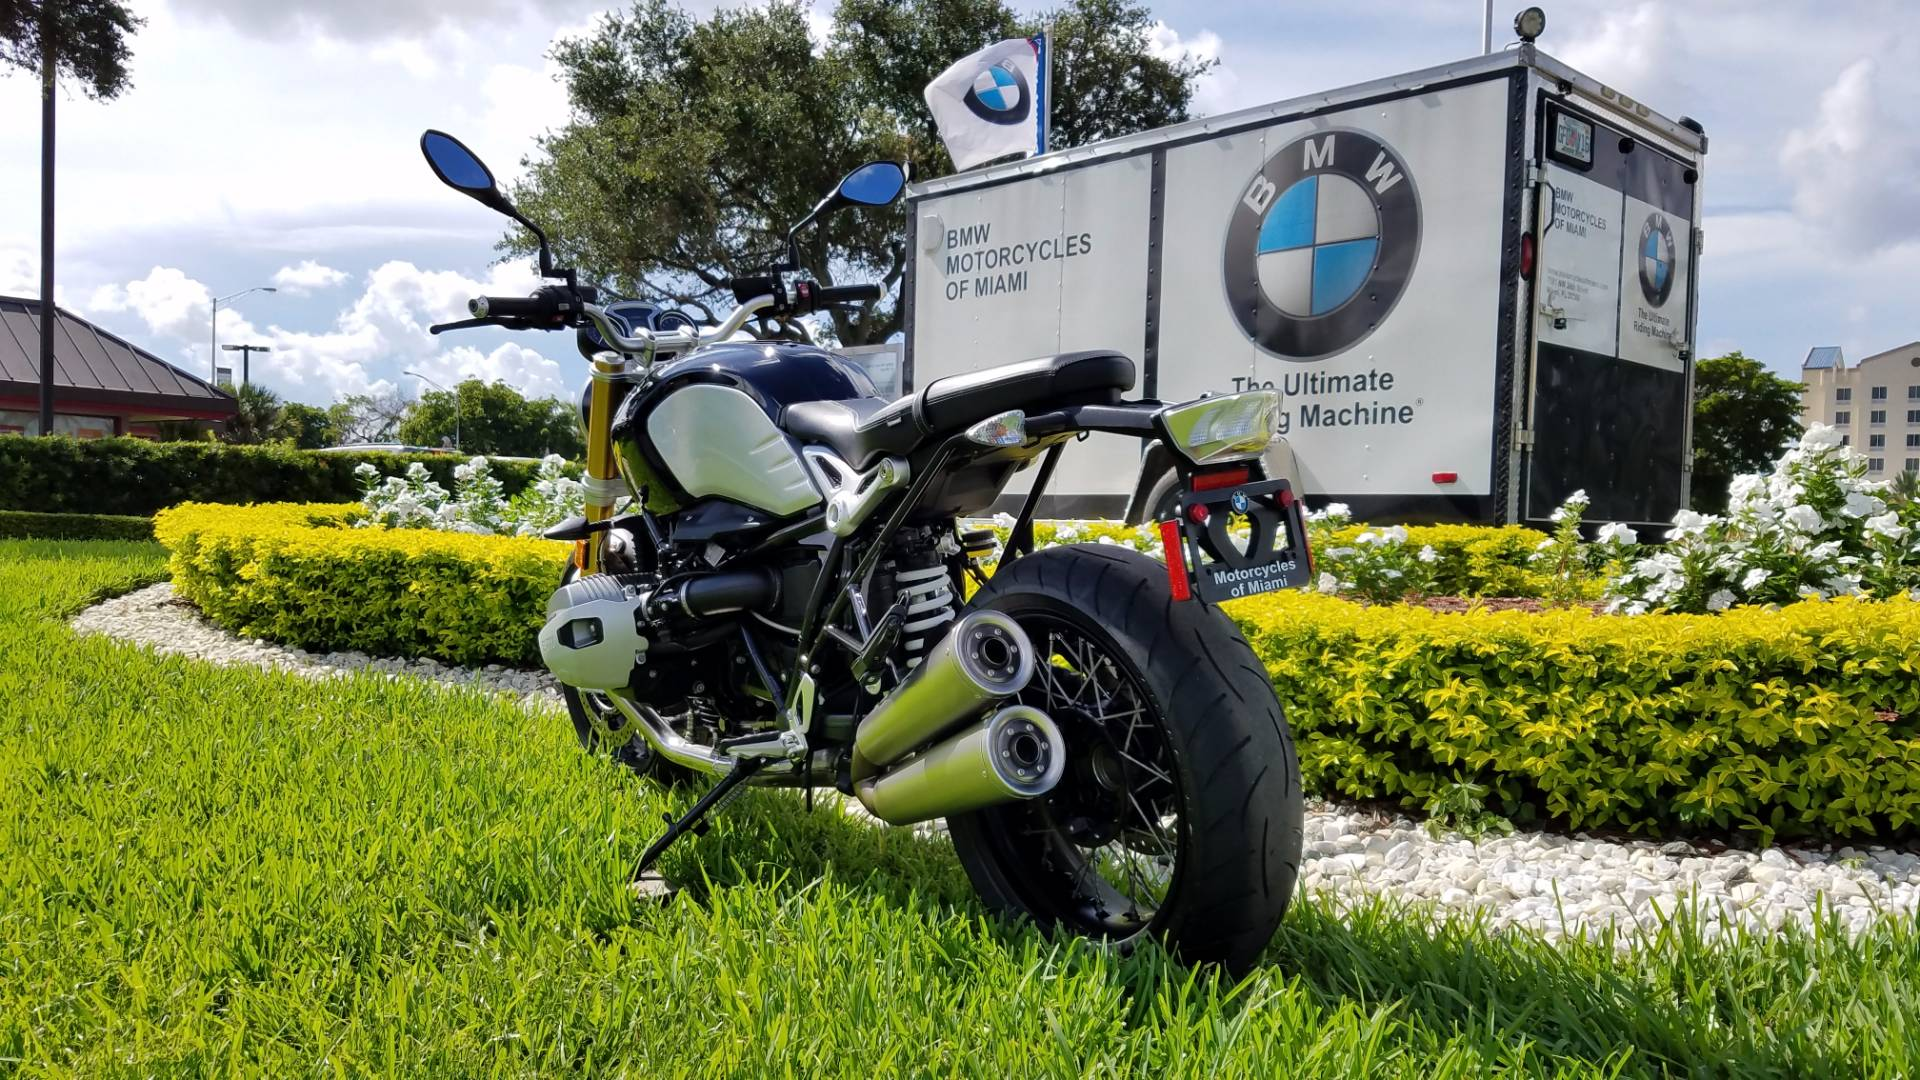 Used 2015 BMW R nine T For Sale, R nineT For Sale, BMW Motorcycle R nineT, pre-owned BMW Motorcycle, BMW RnineT, RnineT